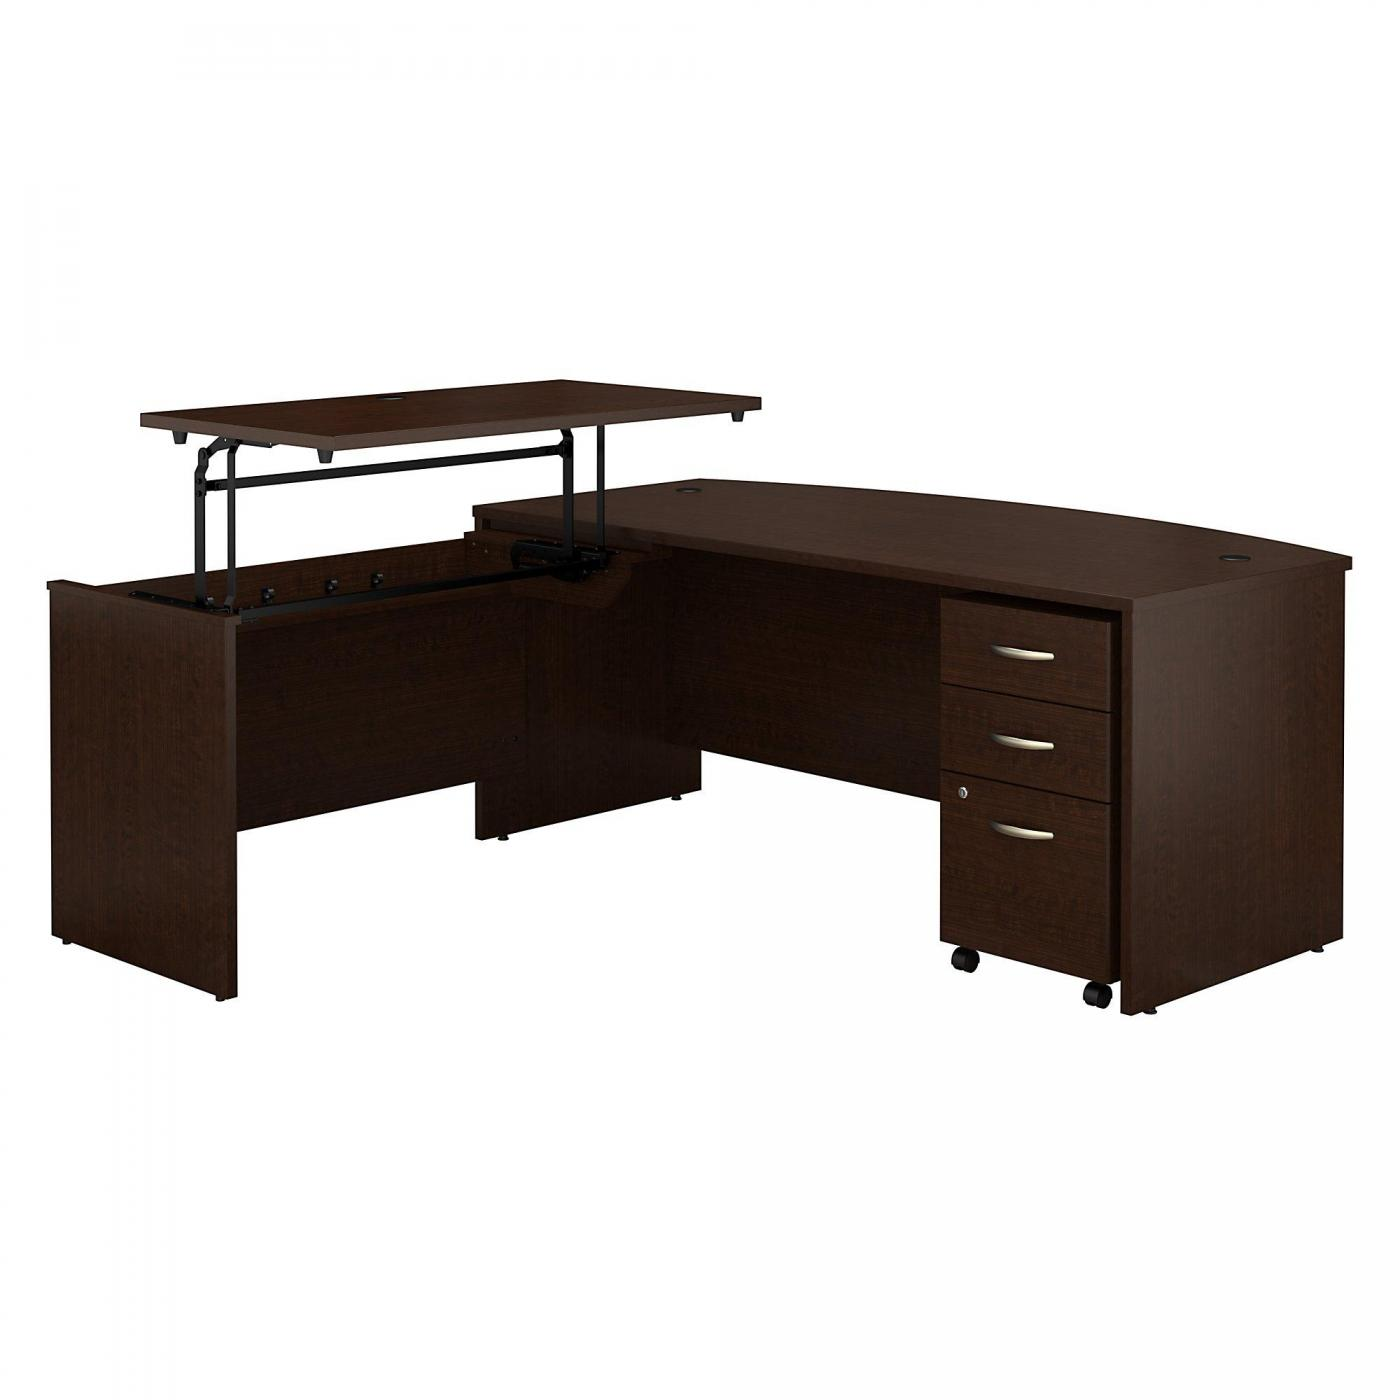 </b></font><b>BUSH BUSINESS FURNITURE SERIES C 72W X 36D 3 POSITION BOW FRONT SIT TO STAND L SHAPED DESK WITH MOBILE FILE CABINET. FREE SHIPPING</b></font>  VIDEO BELOW. <p>RATING:&#11088;&#11088;&#11088;&#11088;&#11088;</b></font></b>